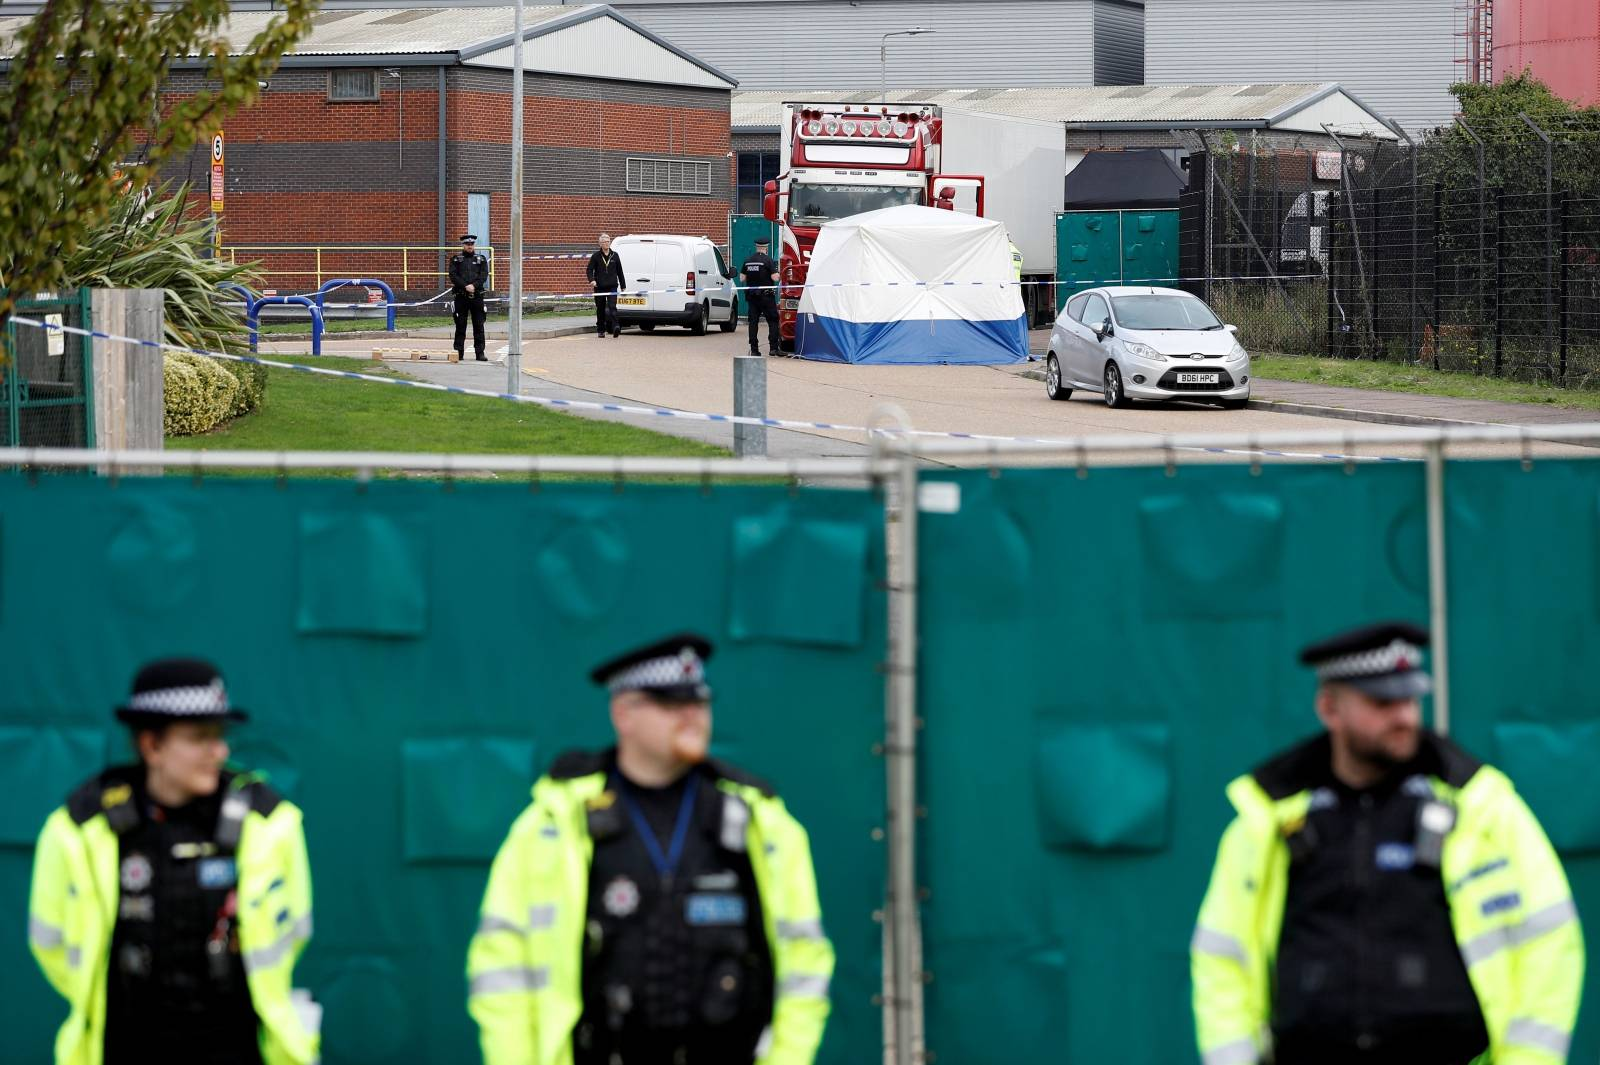 The scene where bodies were discovered in a lorry container, in Grays, Essex